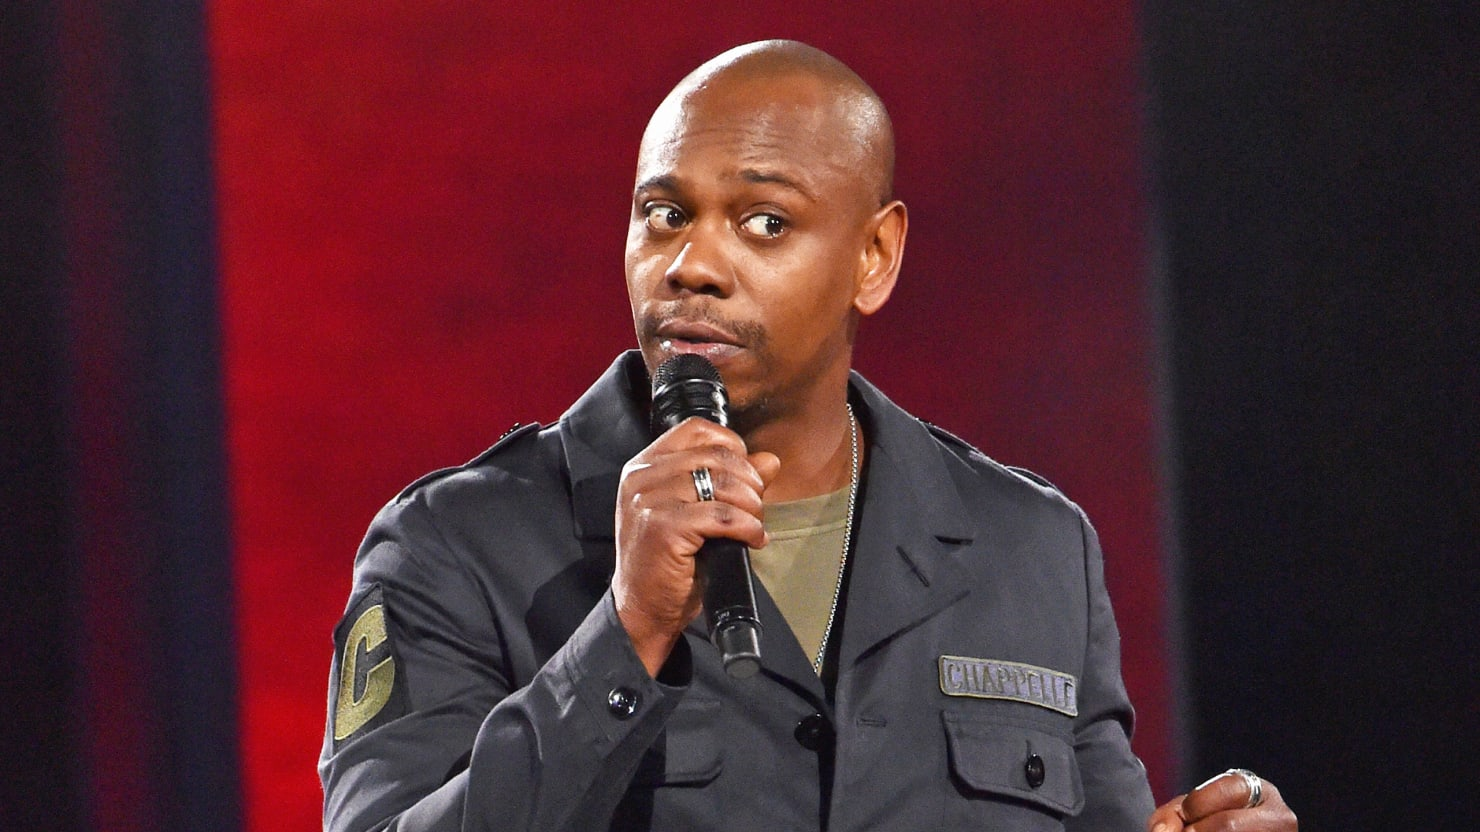 Comedian Dave Chappelle Defends Fellow Comedy Legend Louis C K  Image Source  The Daily Beast